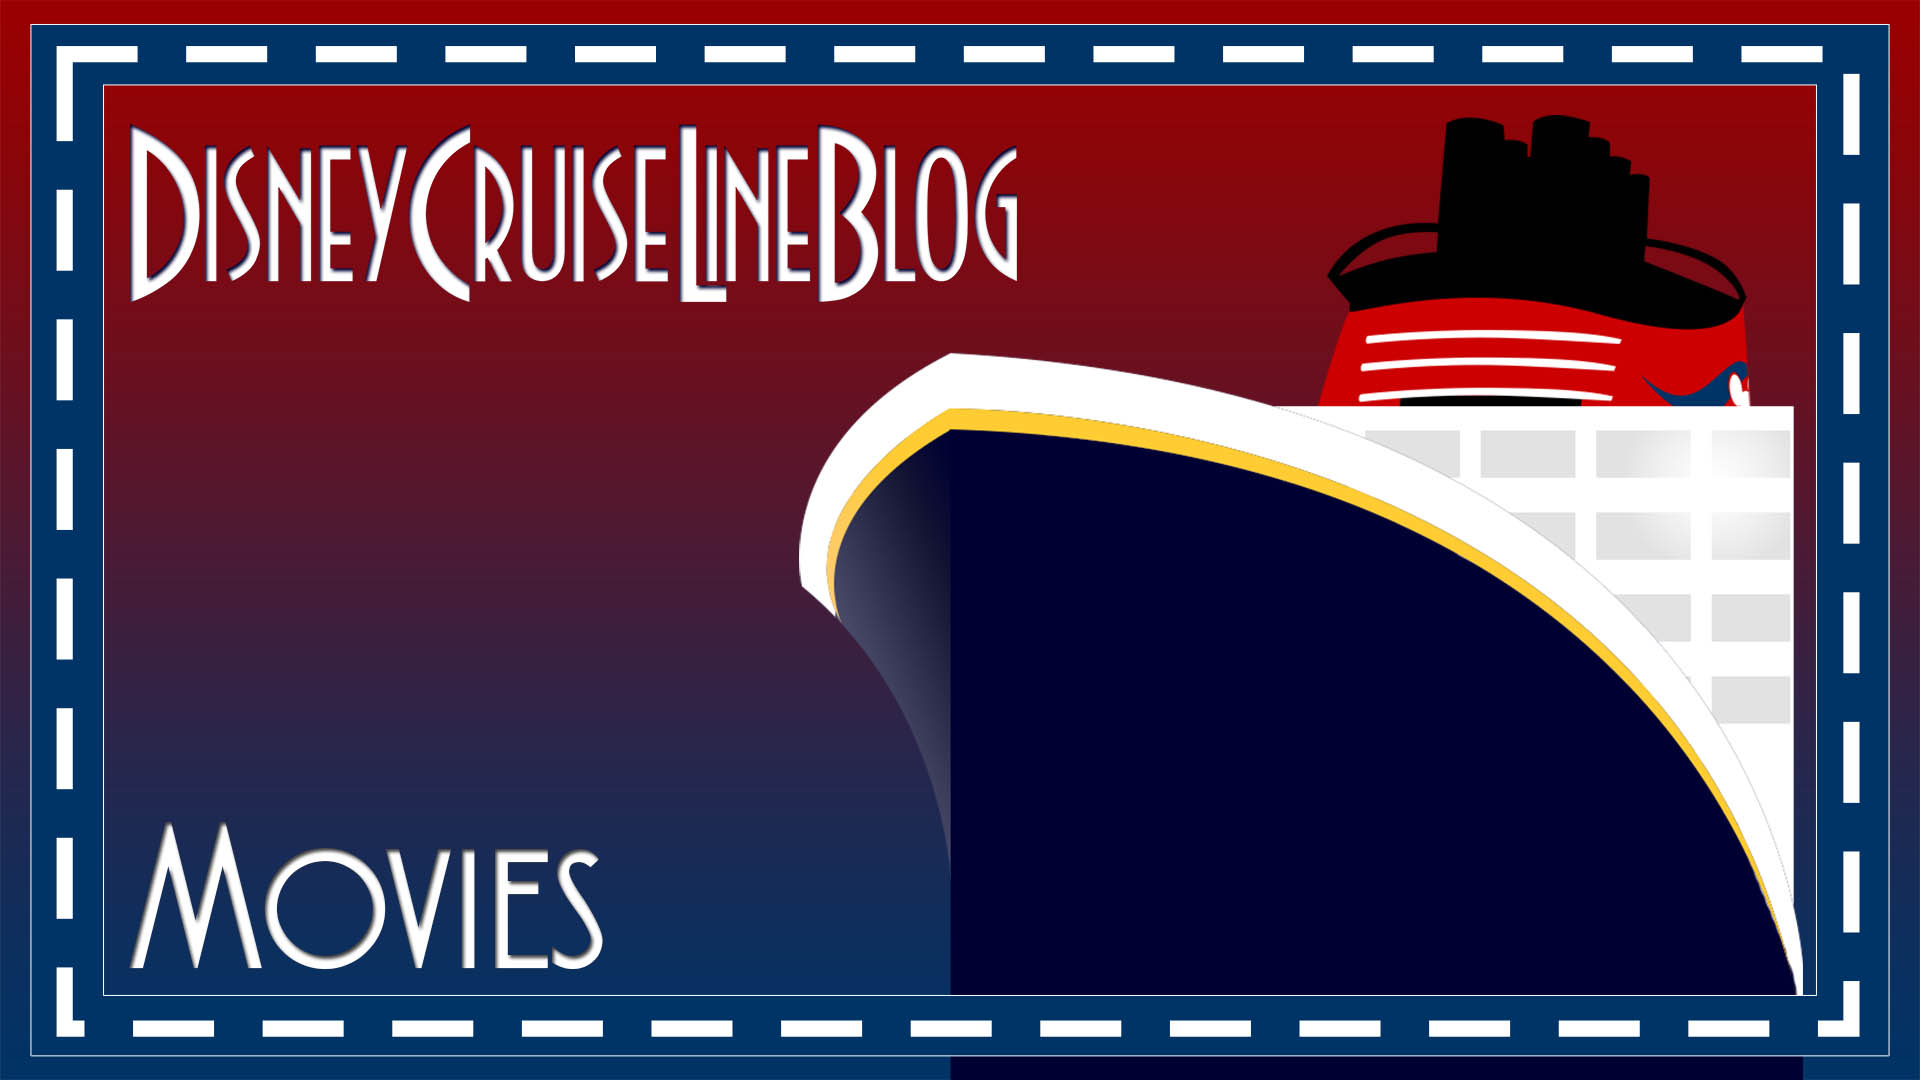 Movies The Disney Cruise Line Blog